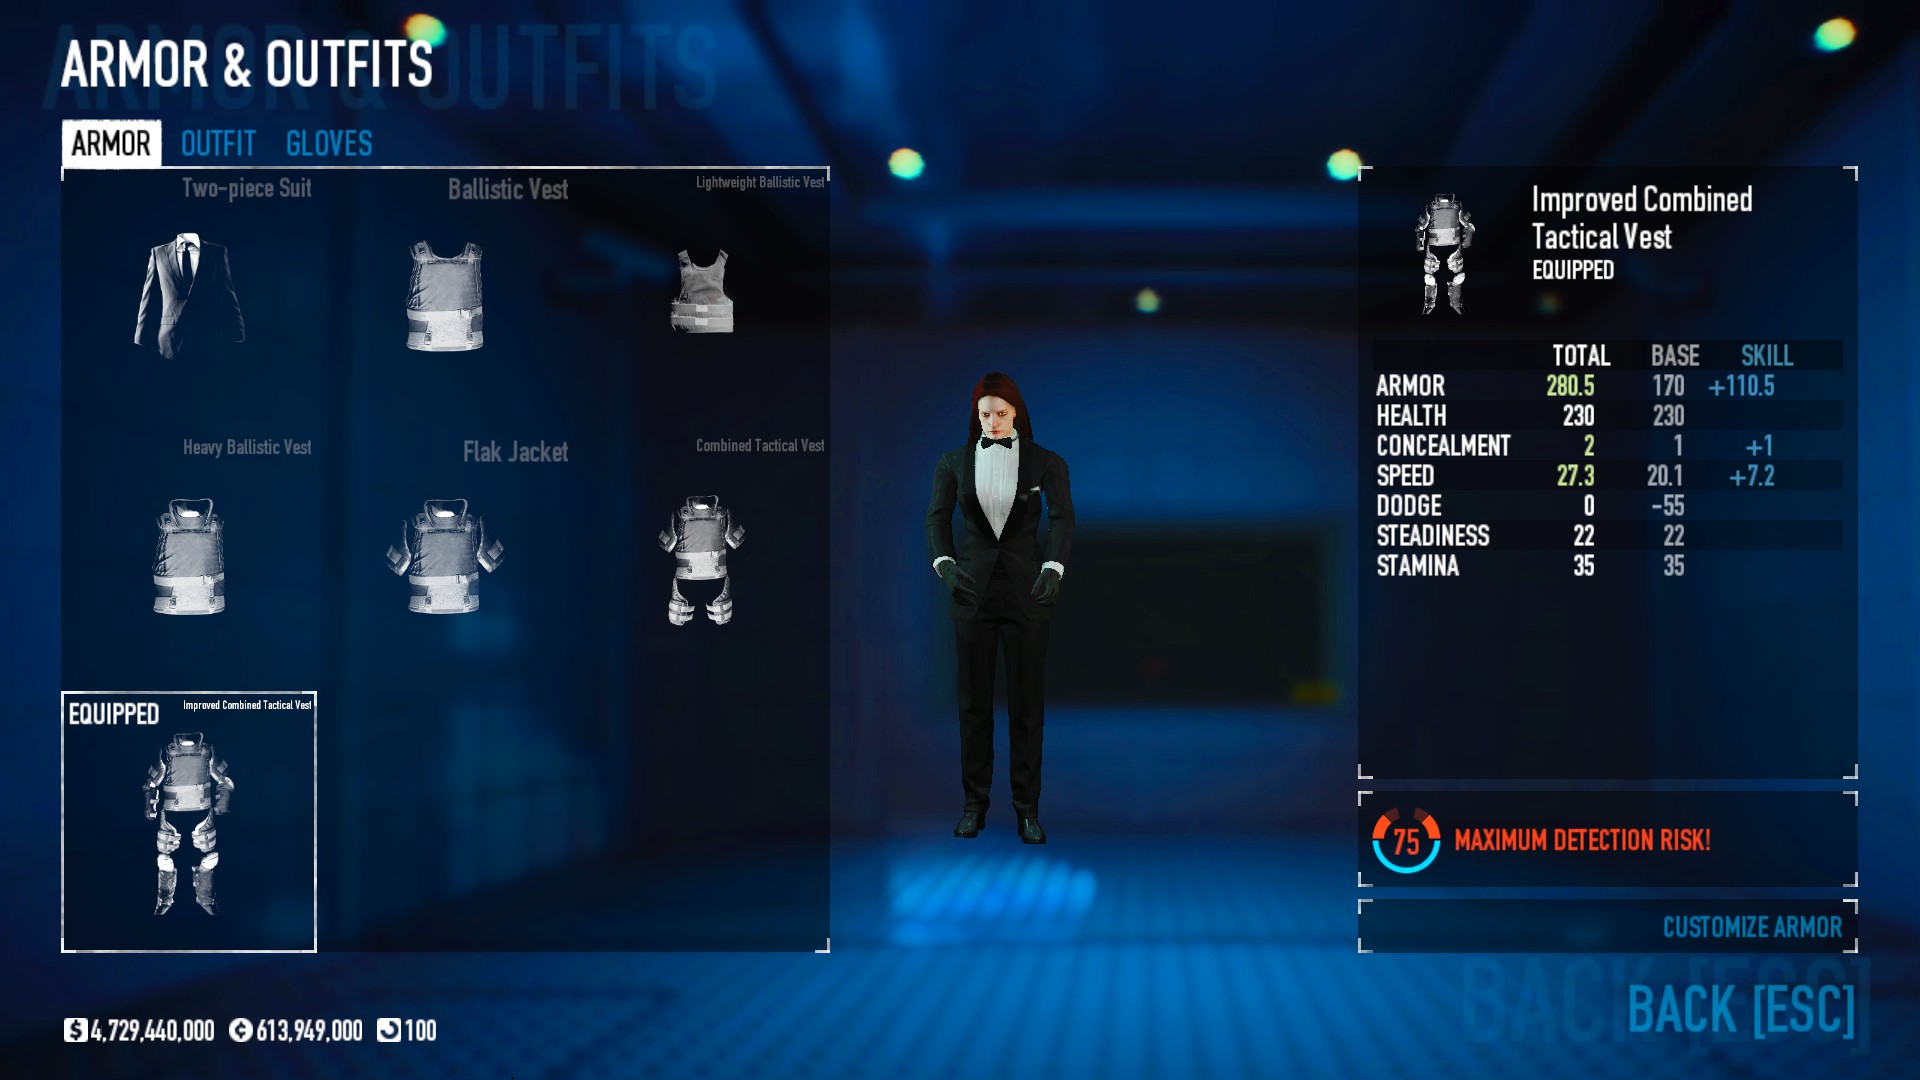 PAYDAY 2 - DSOD No DLC Build + Weapons Attachments & Class - Inventory and Weapons - DA04B10